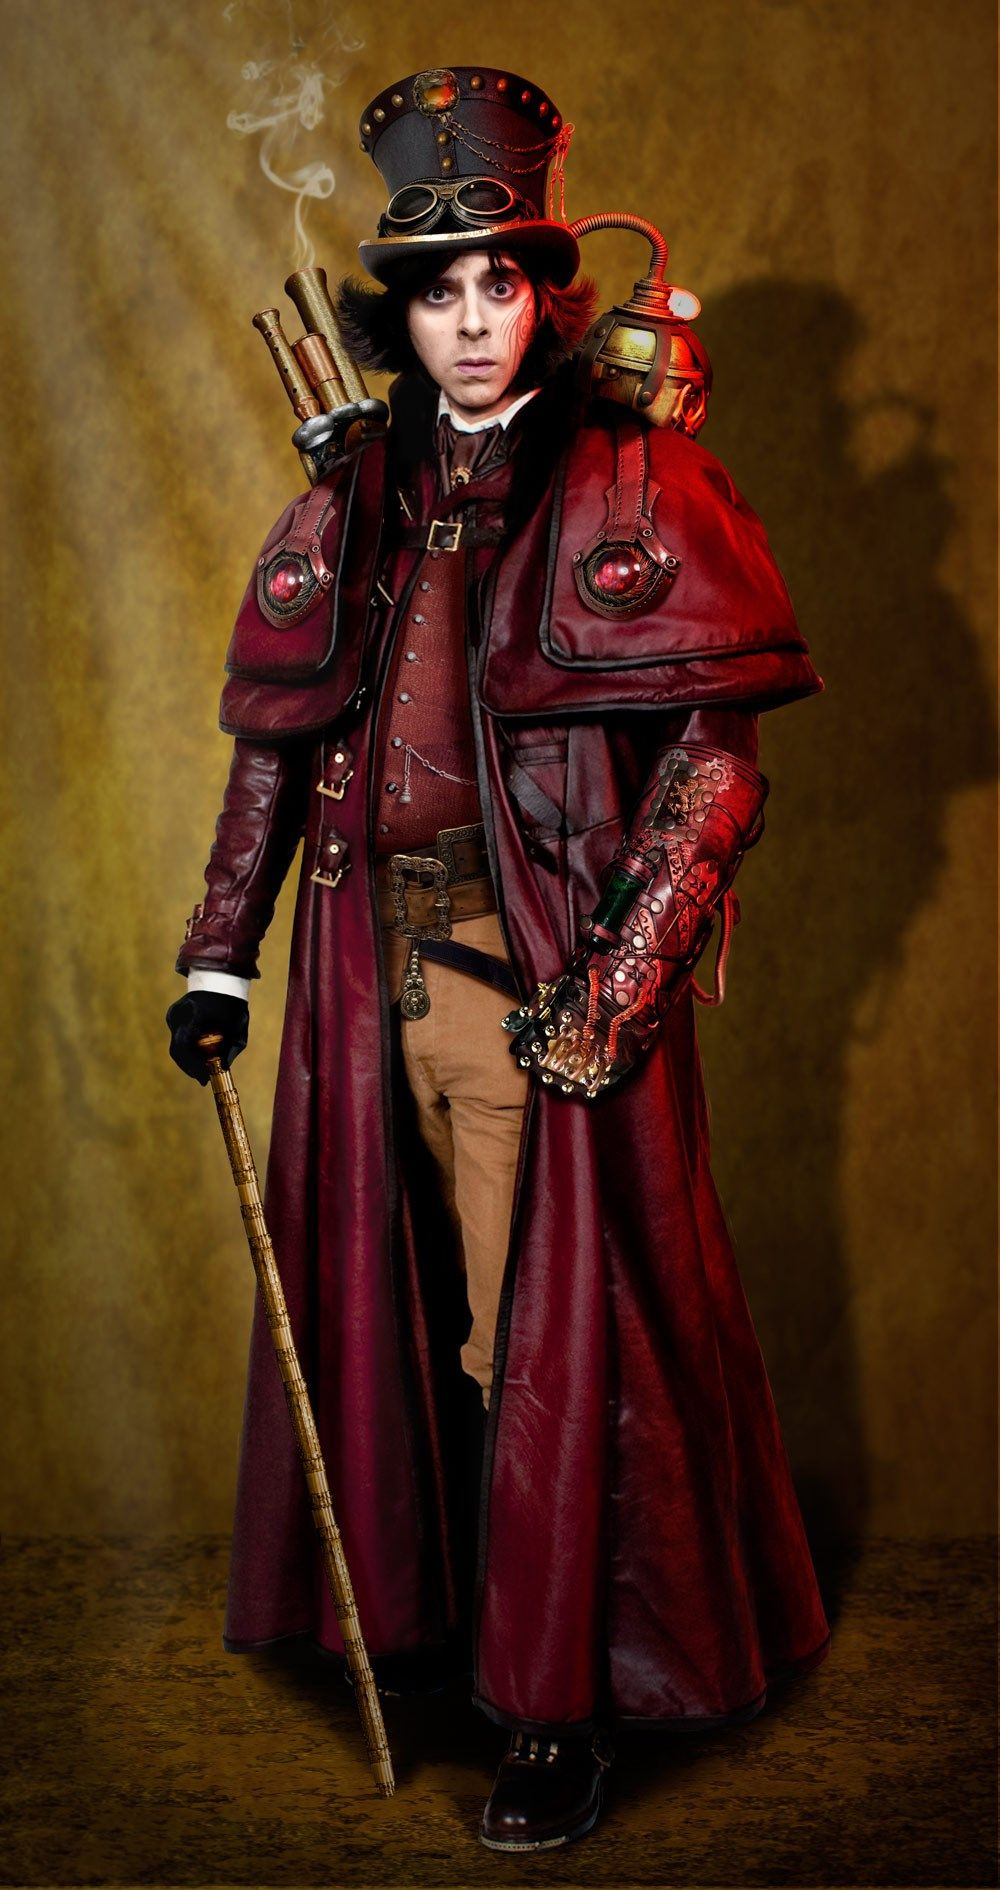 45 best images about concept art steampunk on Pinterest ...  |Victorian Steampunk Concept Art